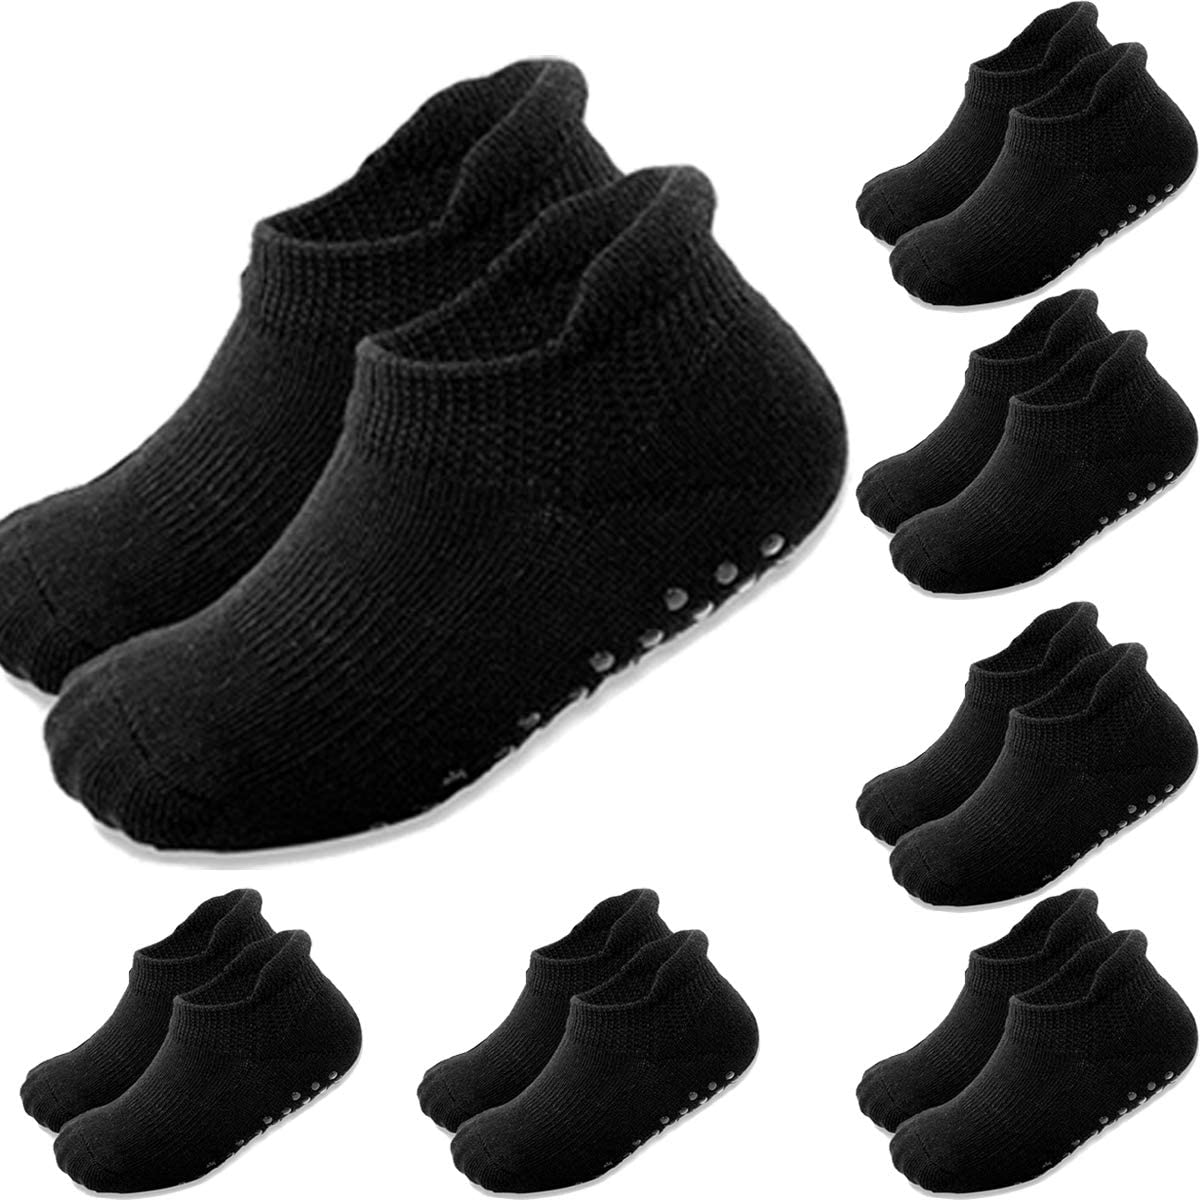 Toddler Grip Ankle Socks, Suitable for Baby Skid Soles Non-slip Warm, Infant Kids Boys Girls Combed Cotton Socks 7 Pairs